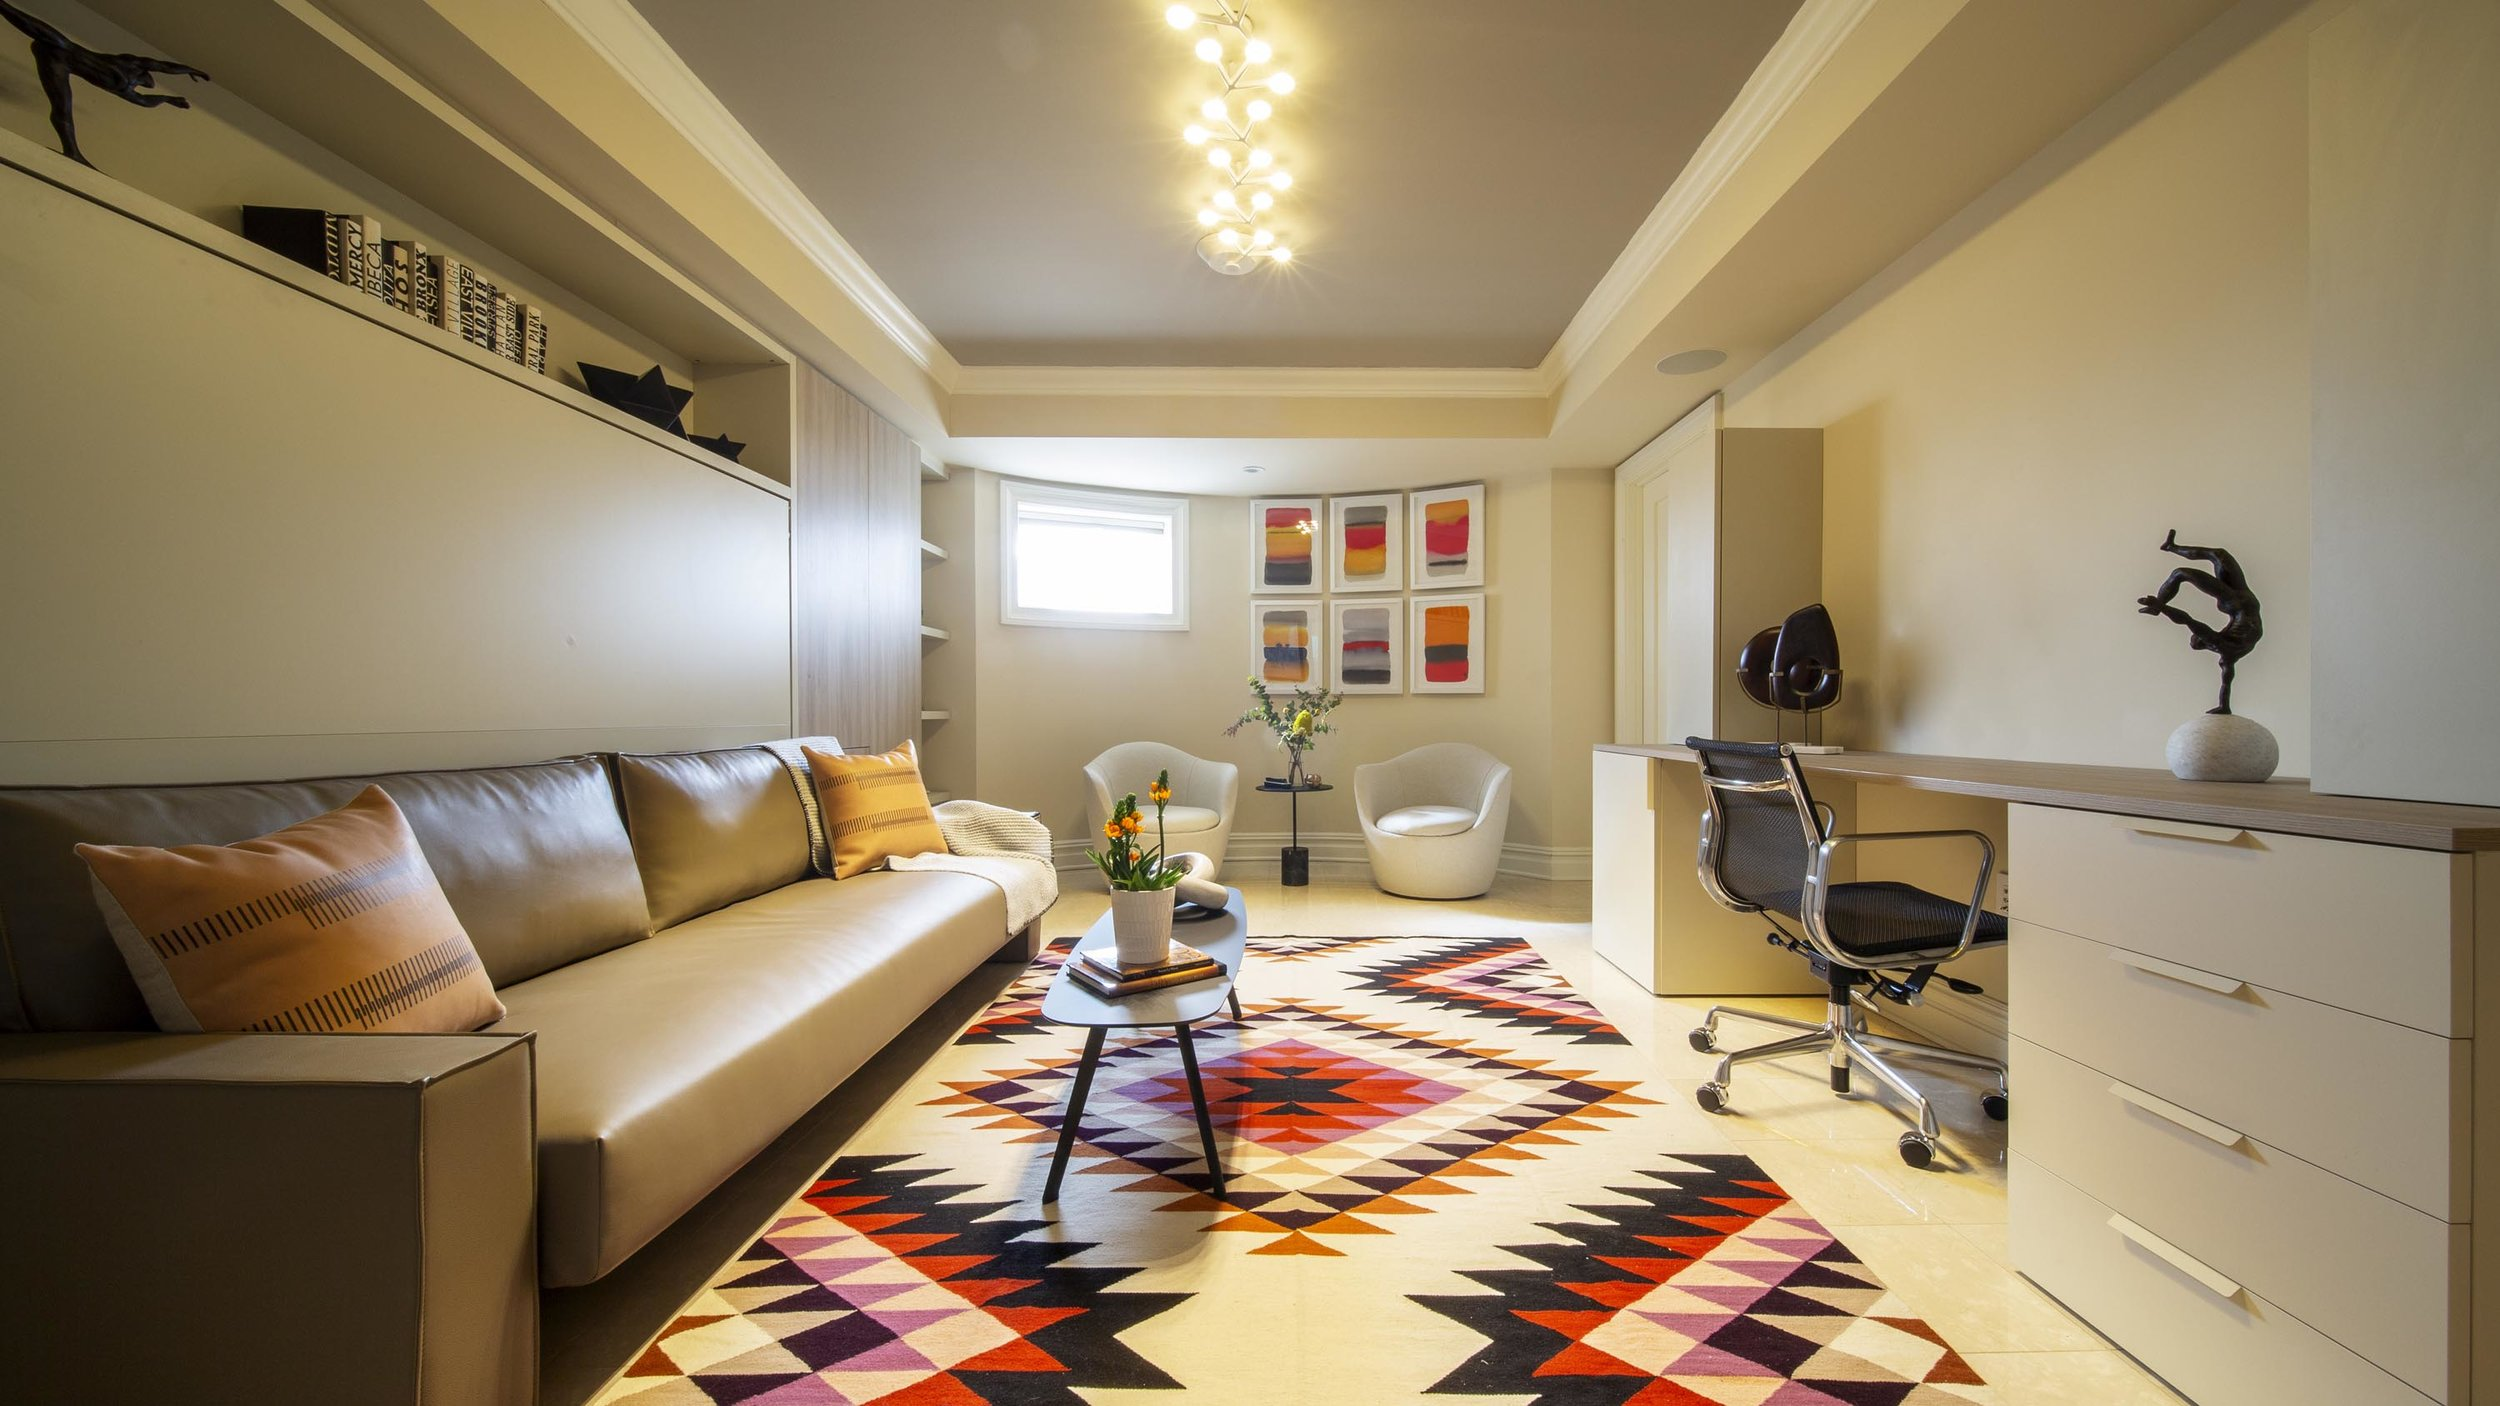 A room with sofa, office chair, abstract texture carpet, white chairs, modern ceiling lights and frames on the wall